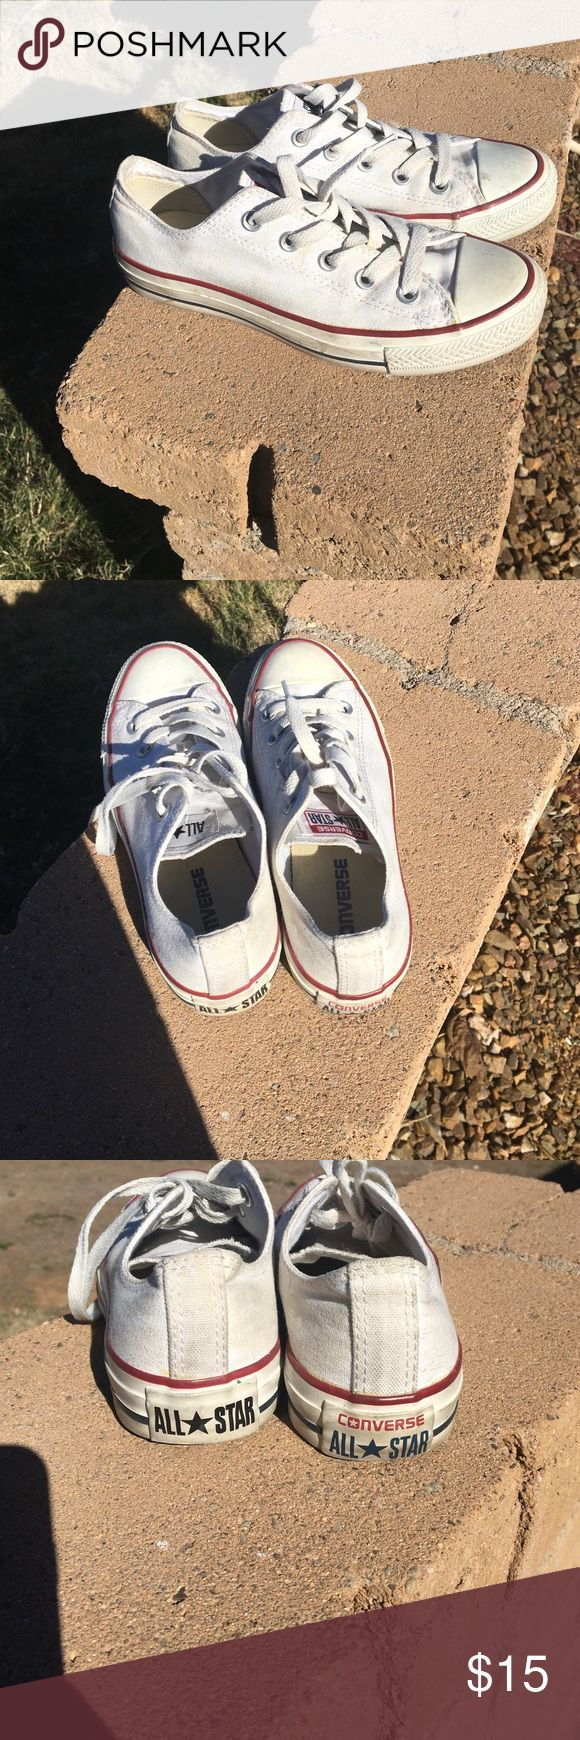 Women's white converse Women's white converse. Size 5.5. I am a 6-6.5 and they fit great. Logos on back are different...bought it this way. Hardly noticeable when wearing. Price reflects flaw. Make me an offer Converse Shoes Athletic Shoes